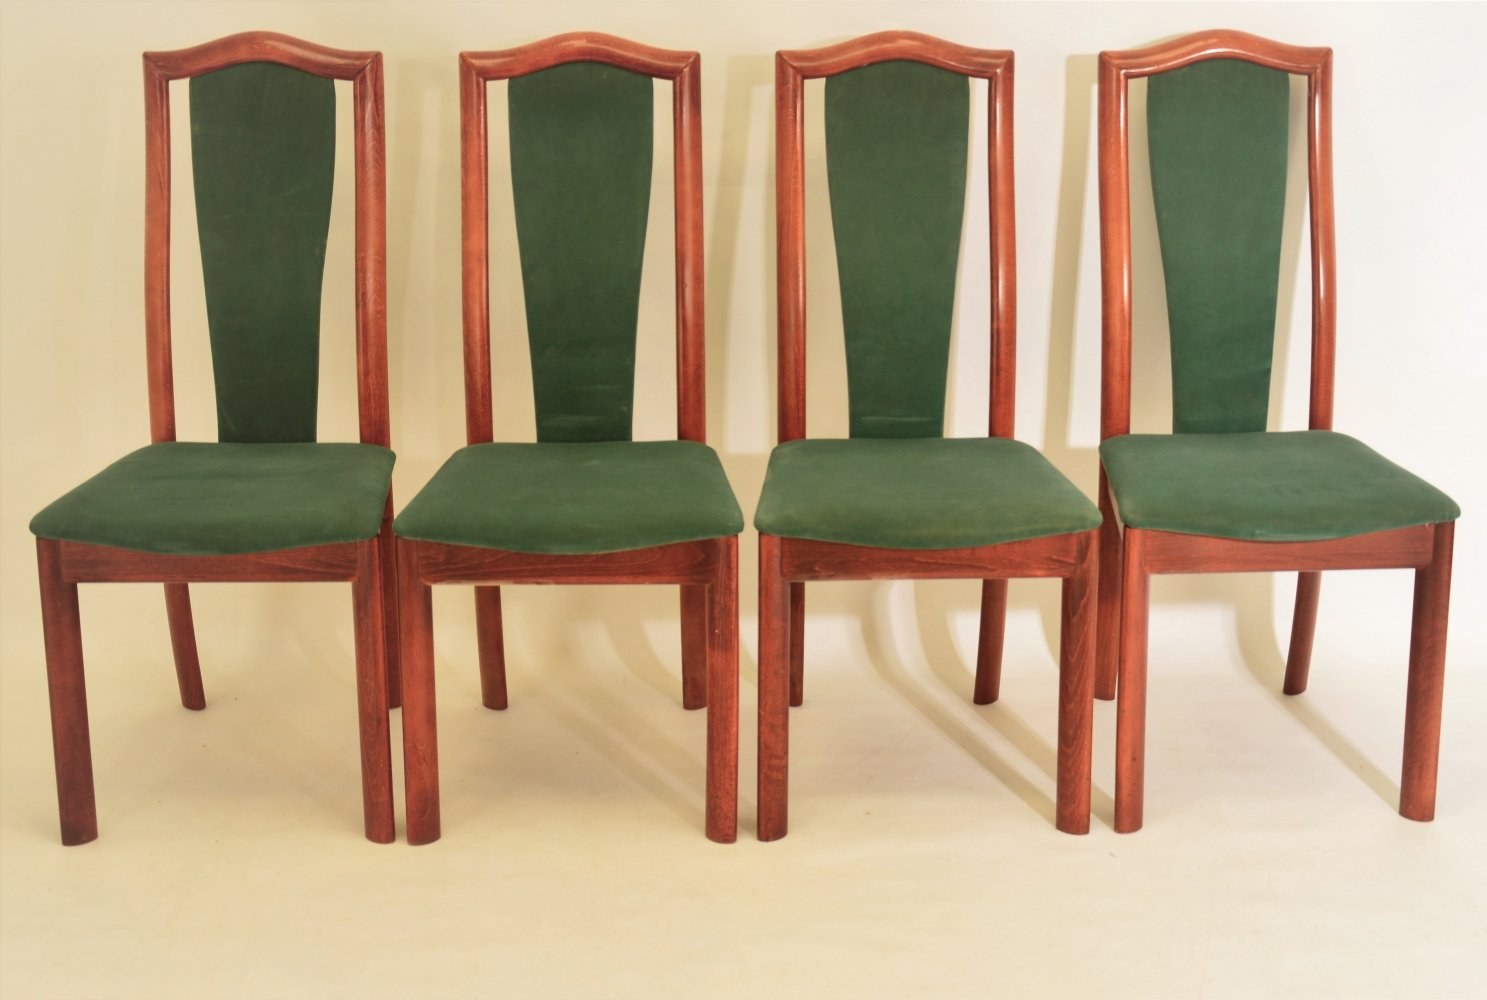 Set of 4 dining chairs by Skovby